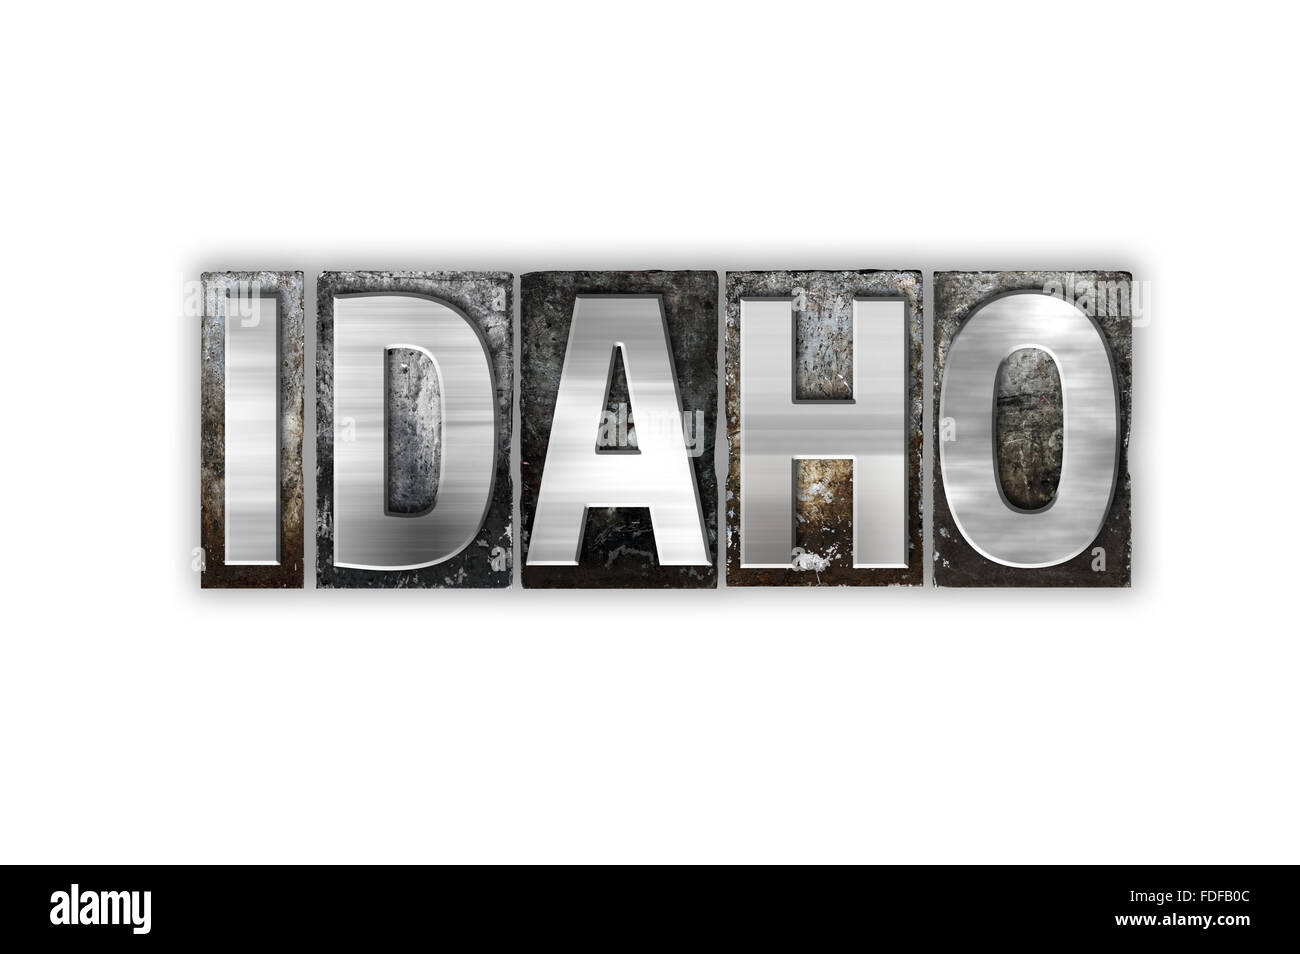 The word 'Idaho' written in vintage metal letterpress type isolated on a white background. - Stock Image